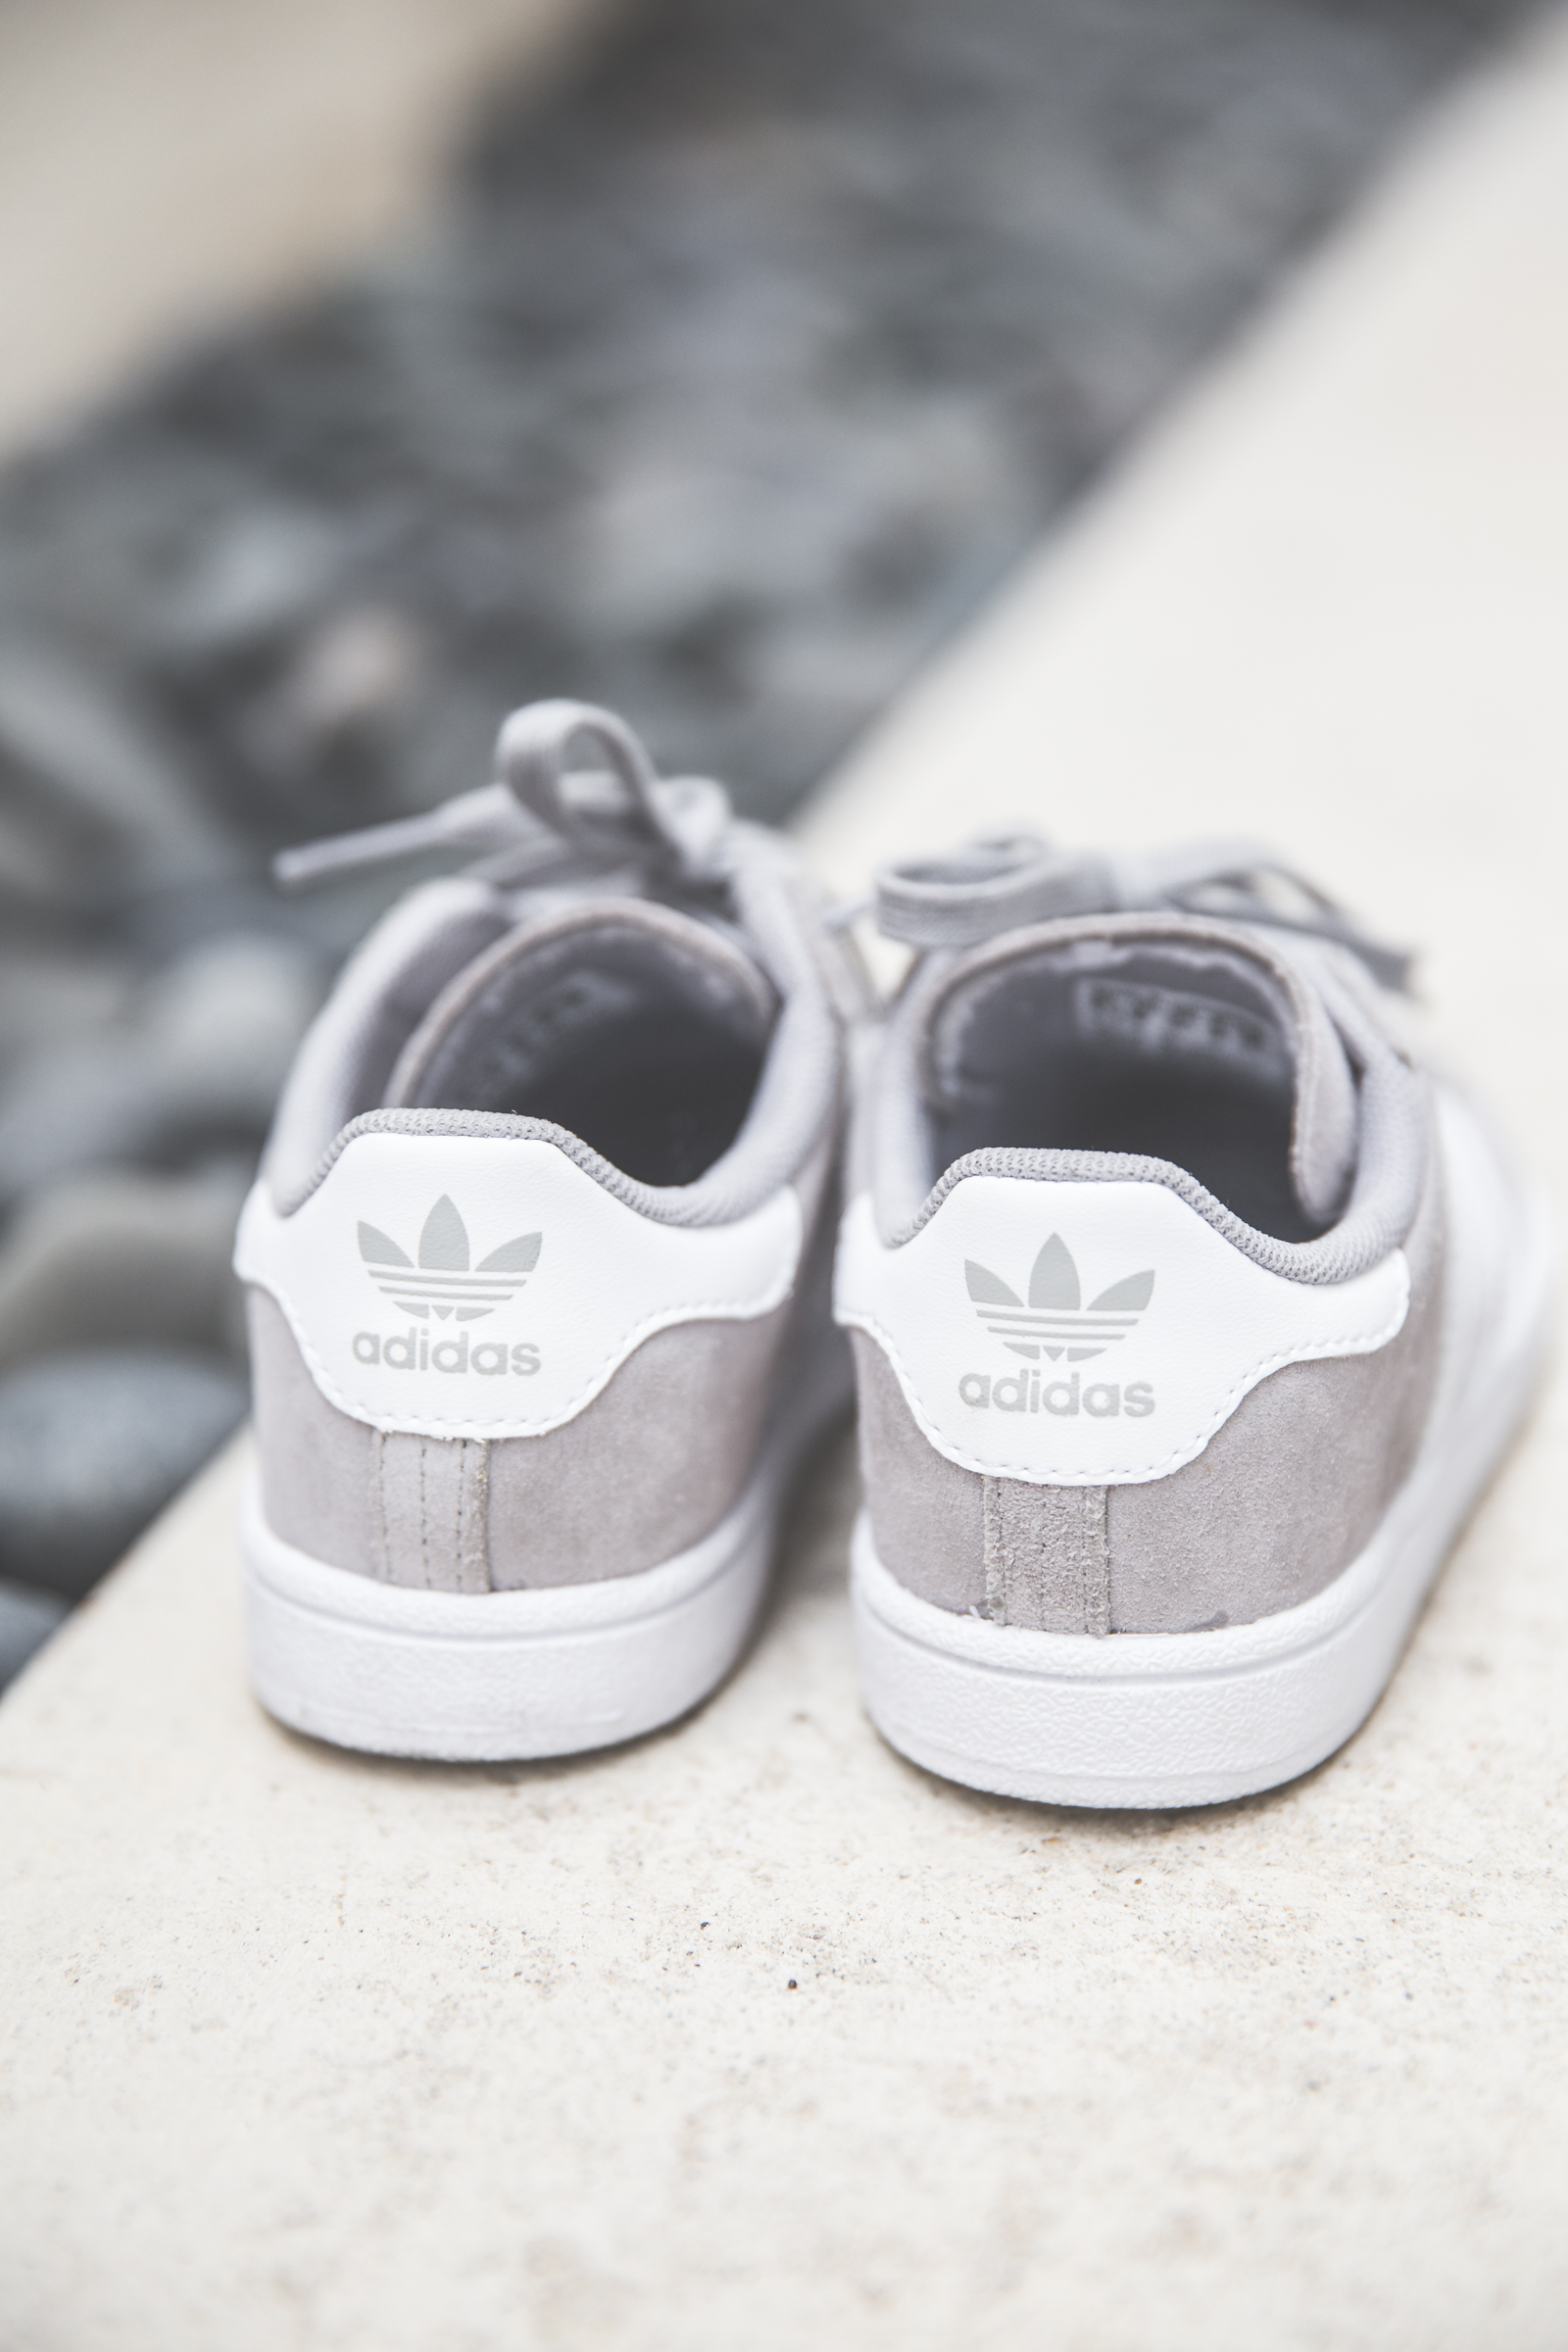 adidas campus kicks for kids-2967